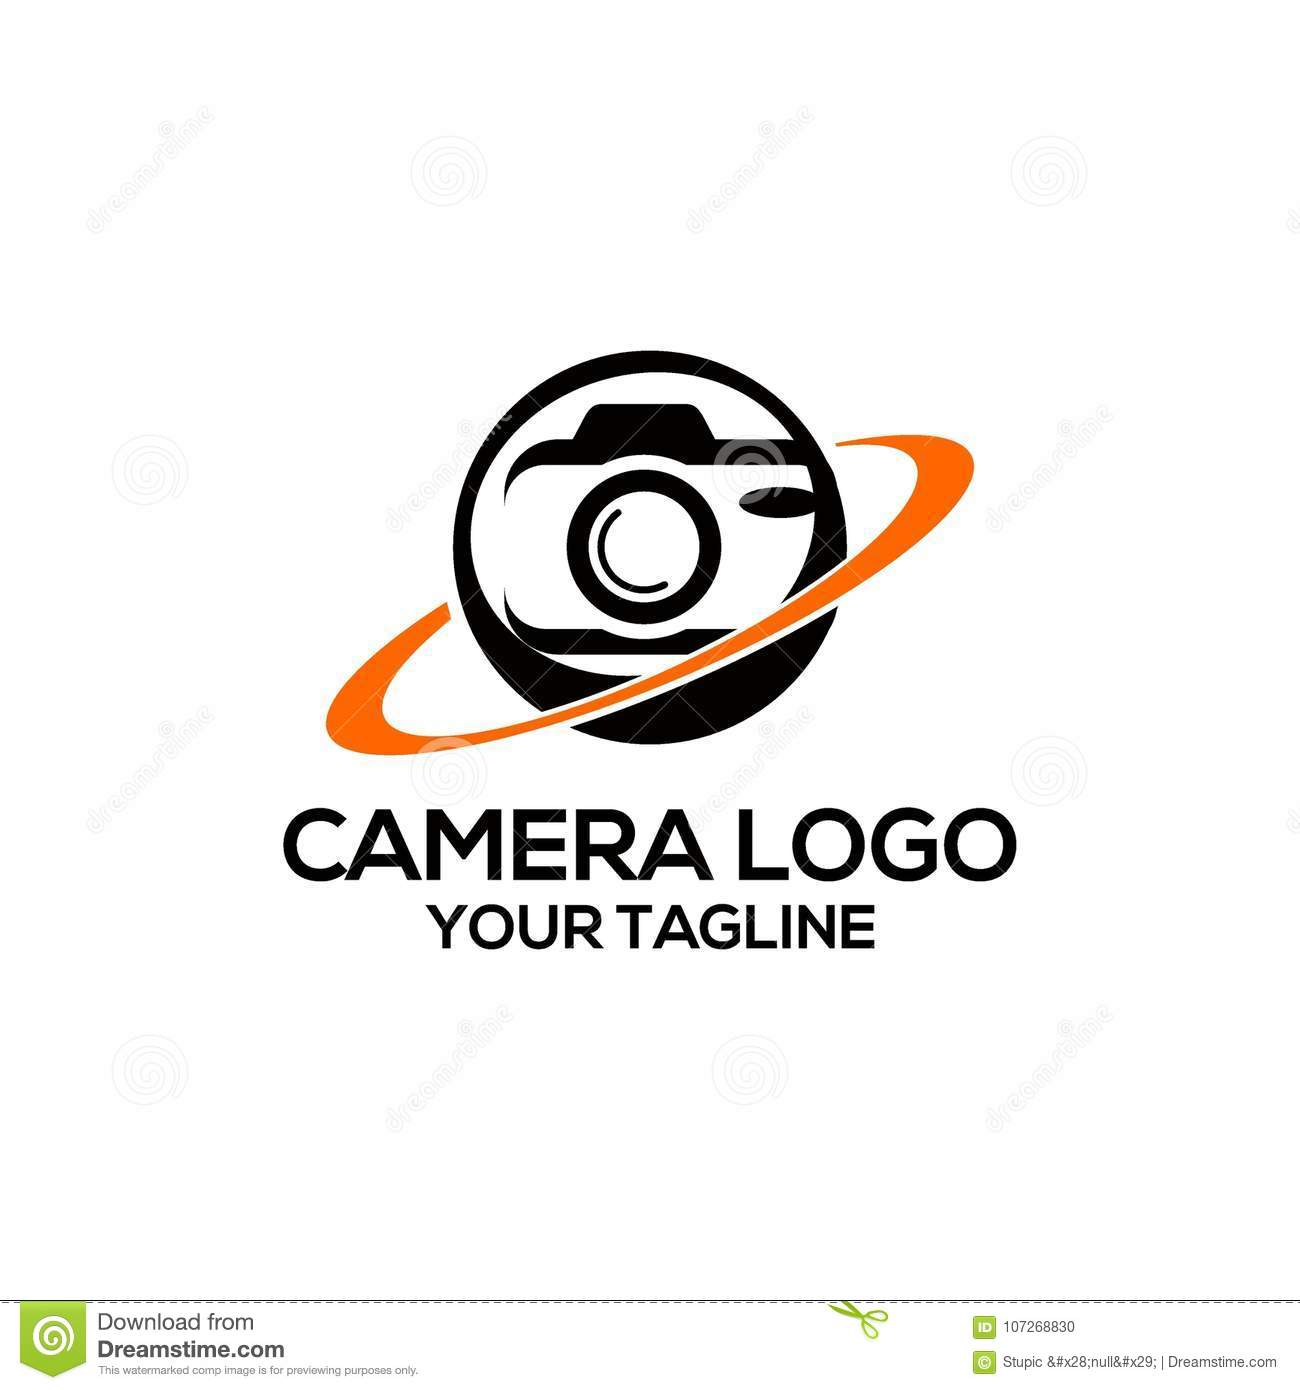 camera-logo-vector-art-template-illustration-simple-unique-various-purposes-best-use-107268830 Awesome Art Vector Camera Logo @koolgadgetz.com.info